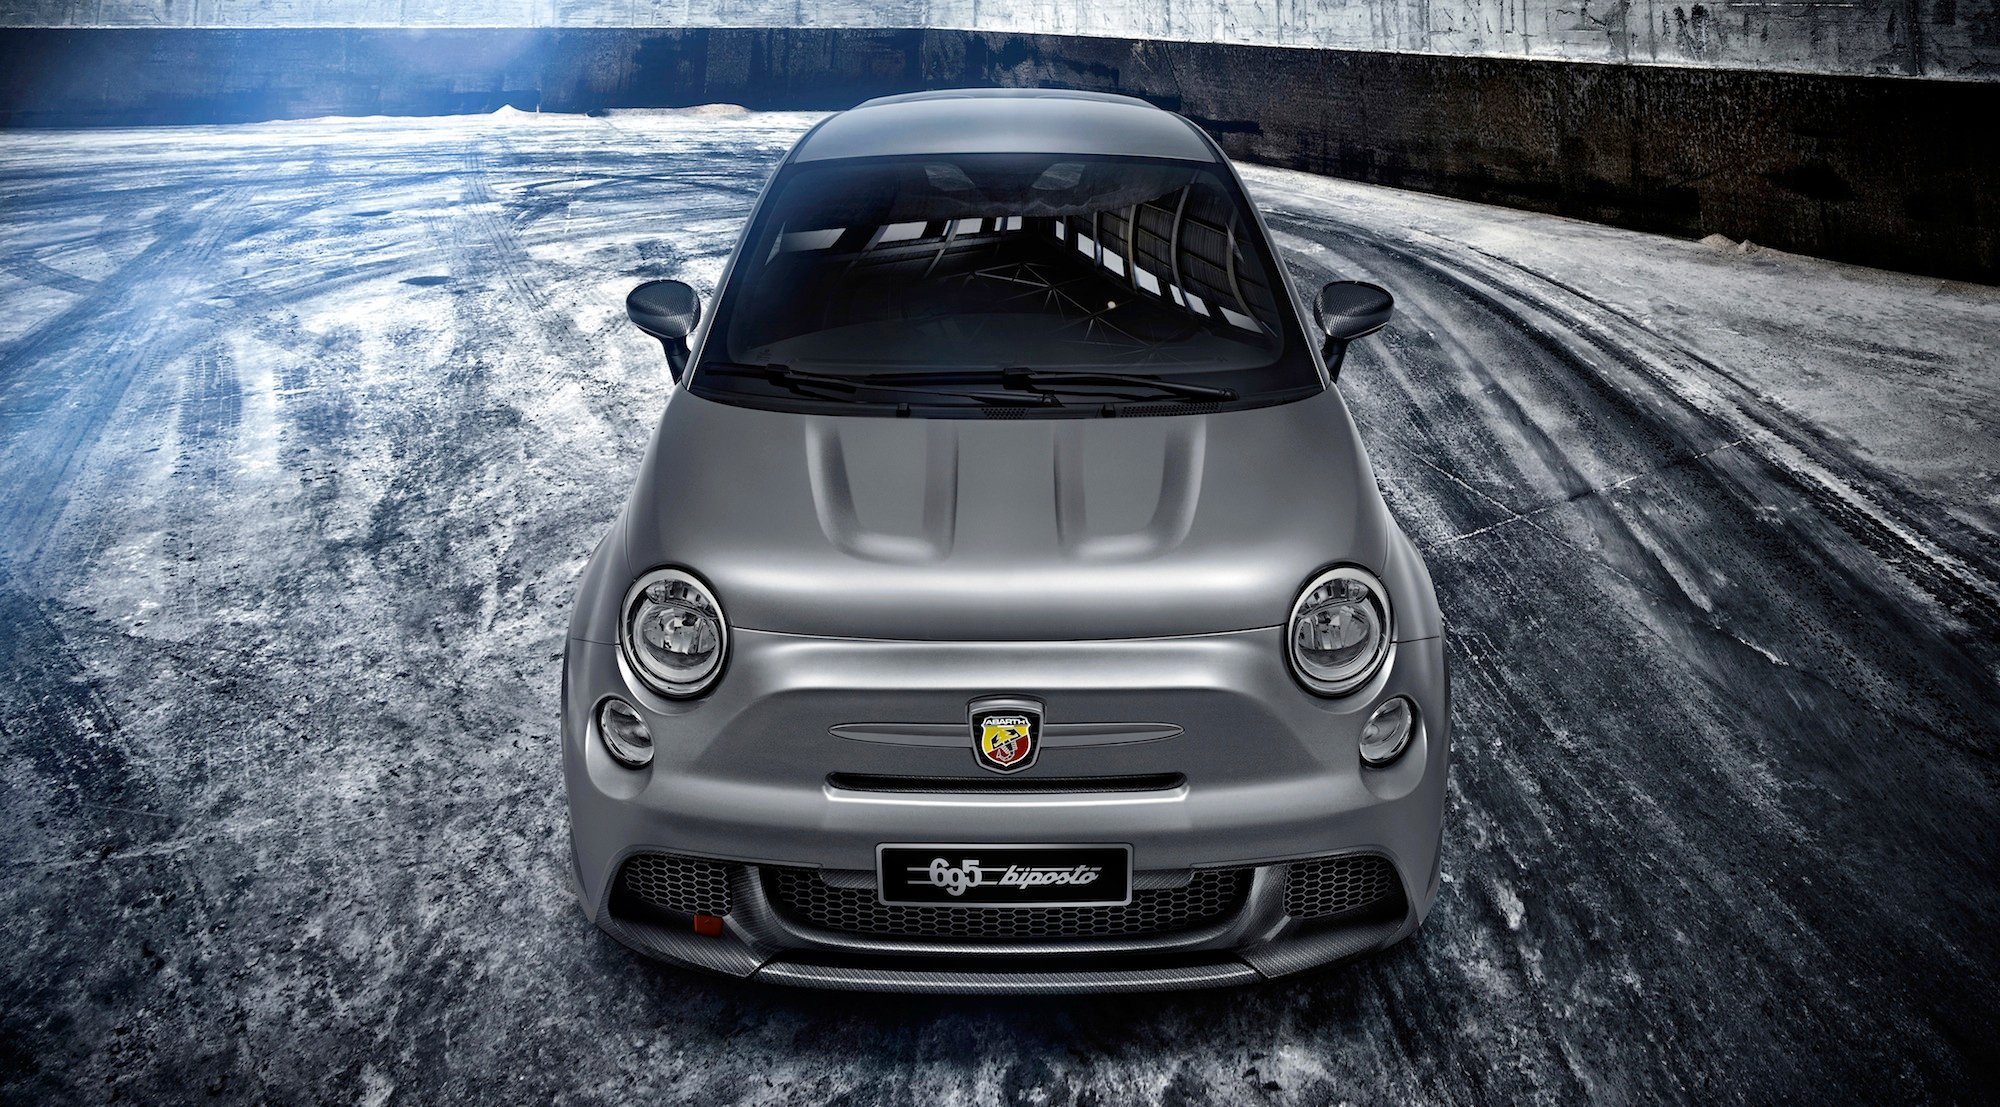 fiat abarth 695 biposto fastest ever street legal abarth revealed photos 1 of 5. Black Bedroom Furniture Sets. Home Design Ideas